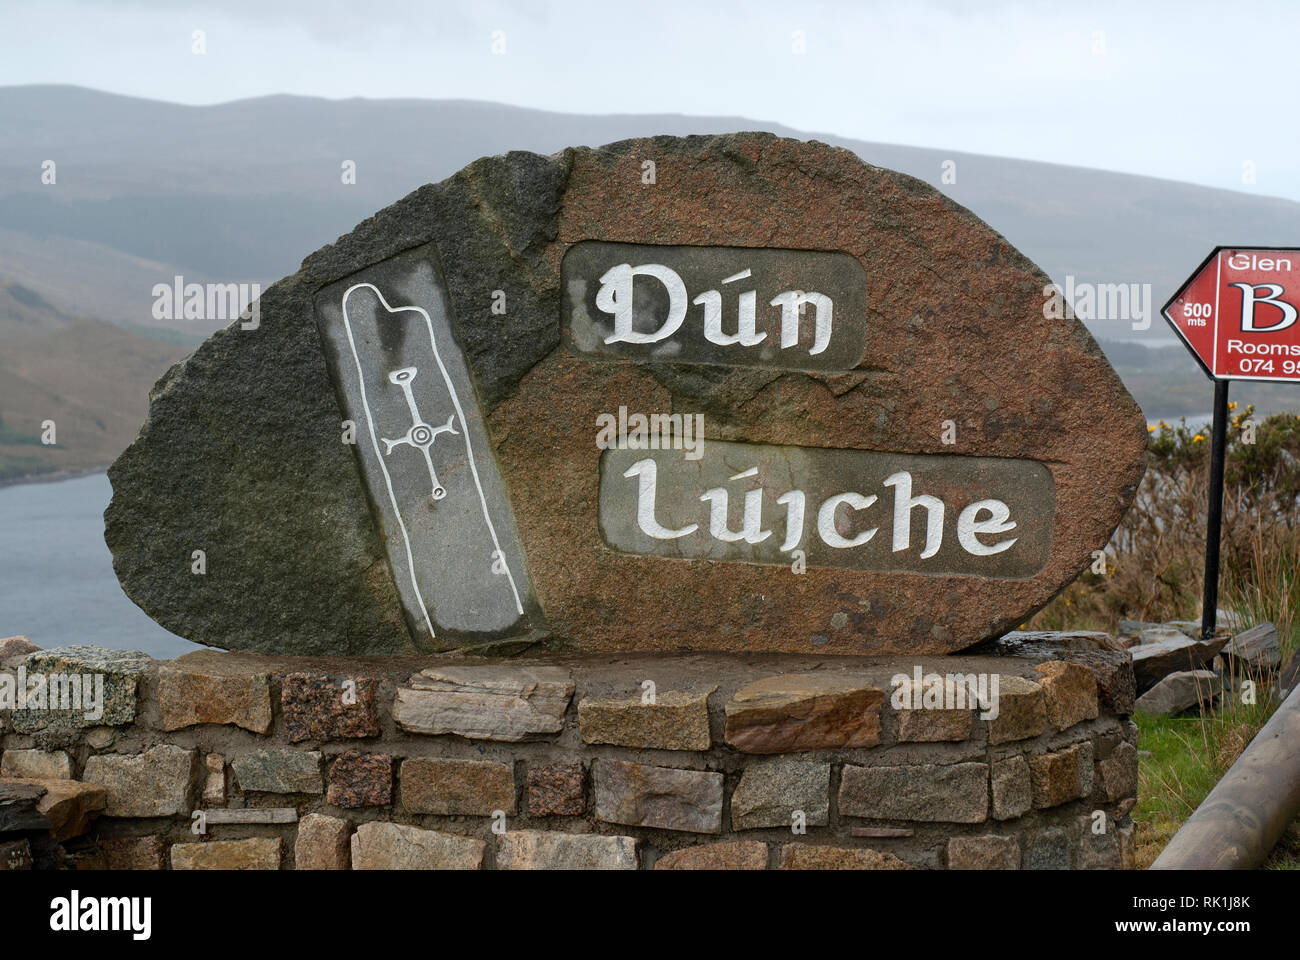 Dún Lúiche (Dunlewey) stone sign, County Donegal, Ireland - Stock Image